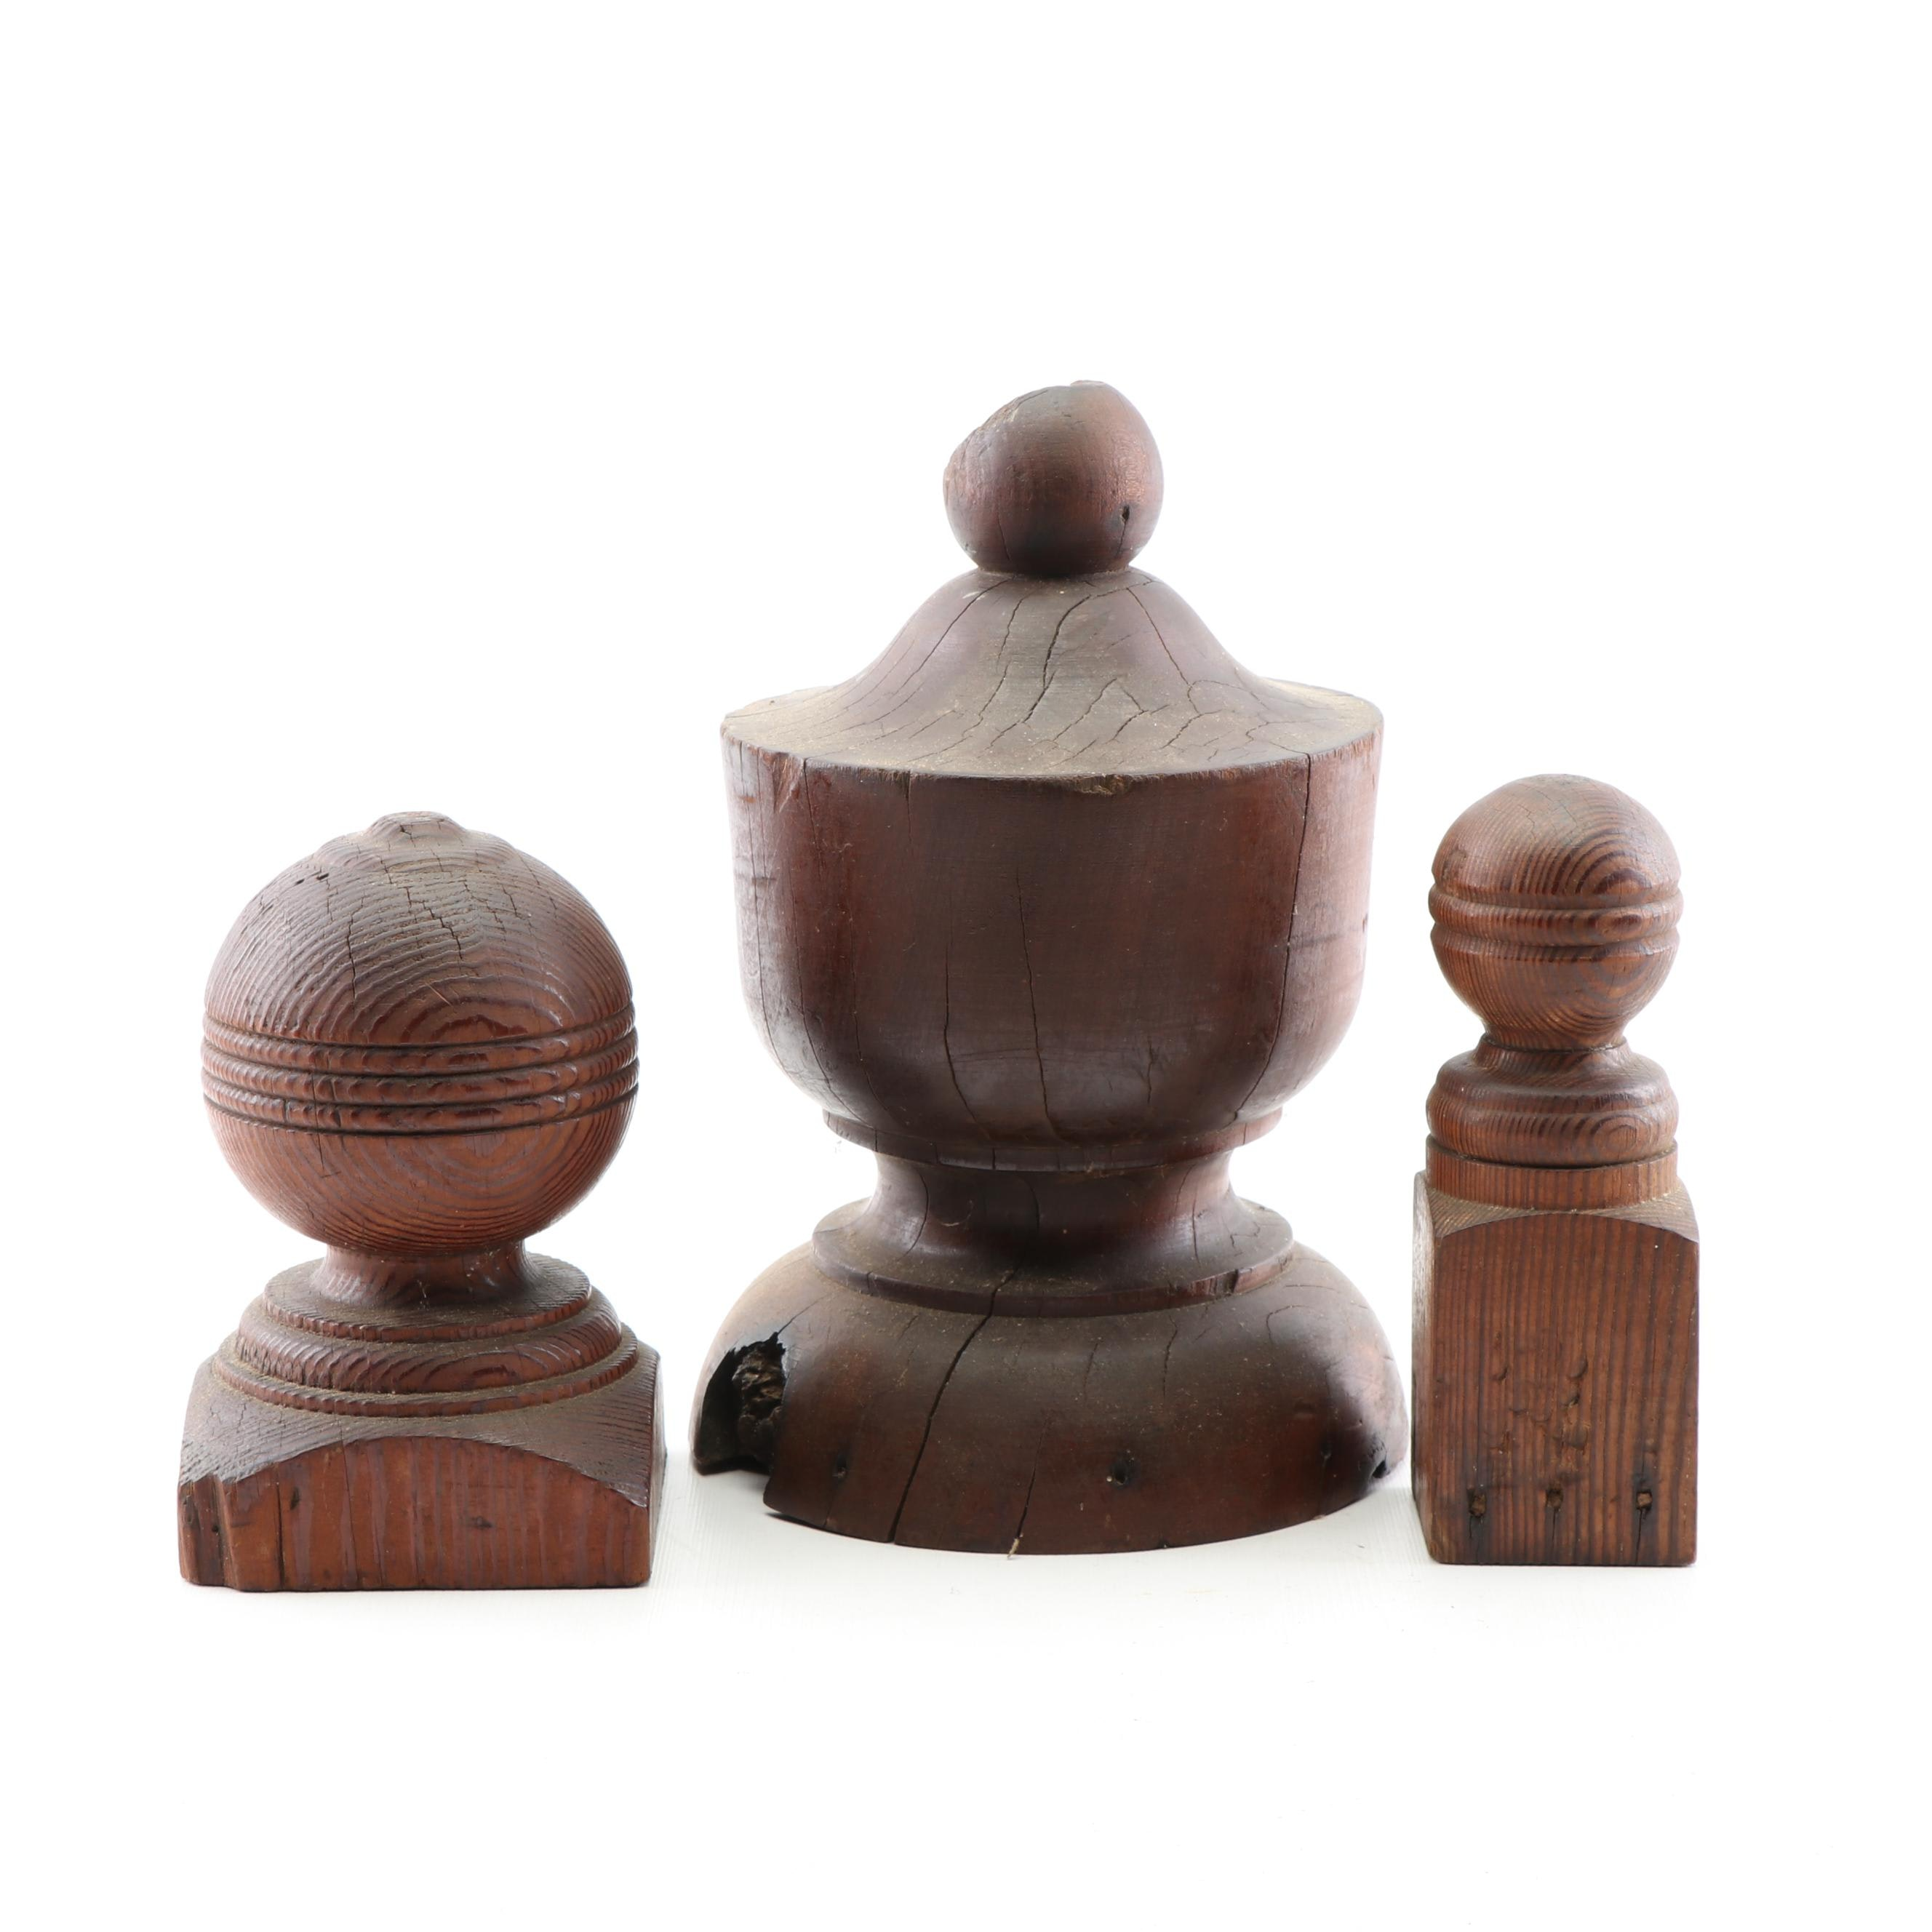 Hardwood Finials, Early/Mid-20th Century